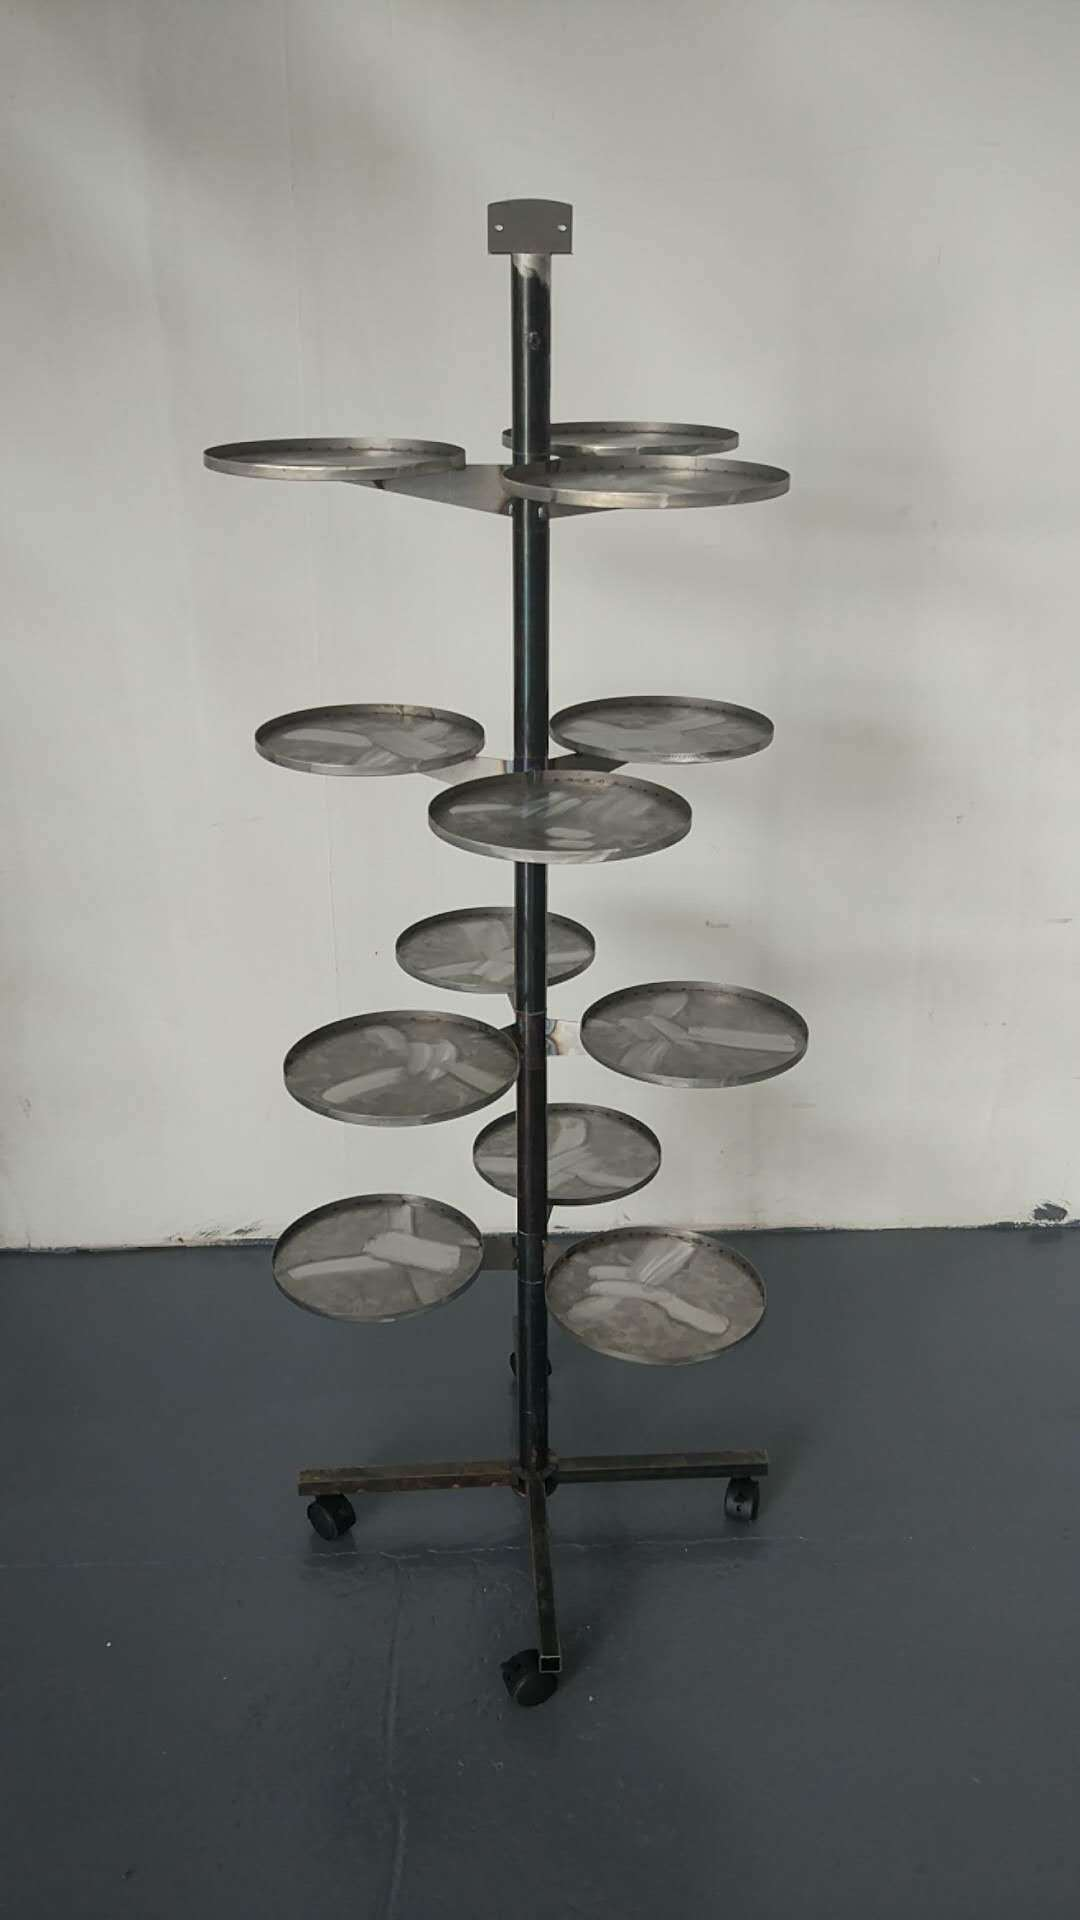 YISHANG -High-quality Rotating Metal Cookies Candy Display Rack For Store | Other Display-1